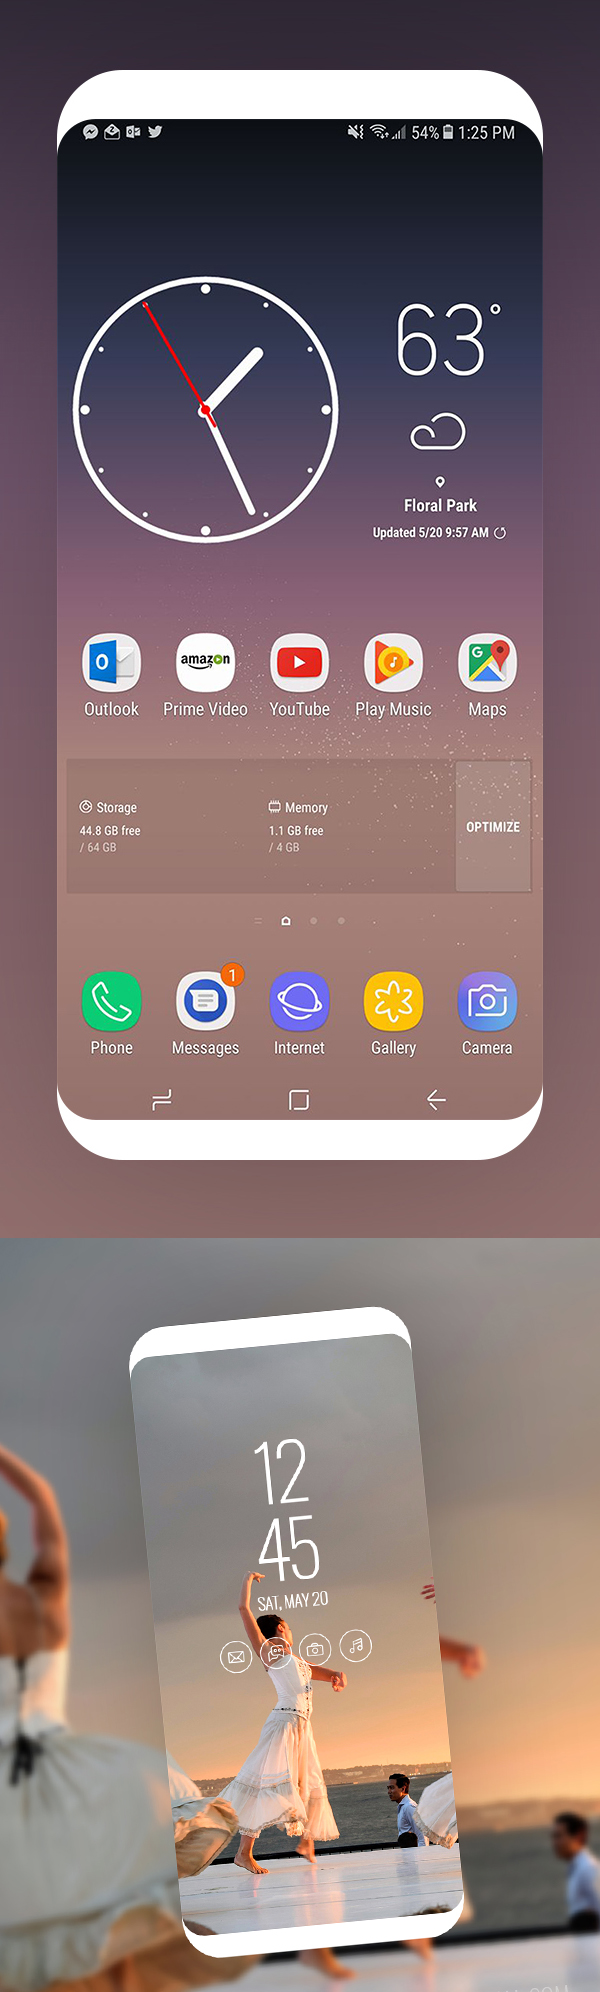 Free Samsung Galaxy S8 Screen Mockup Design